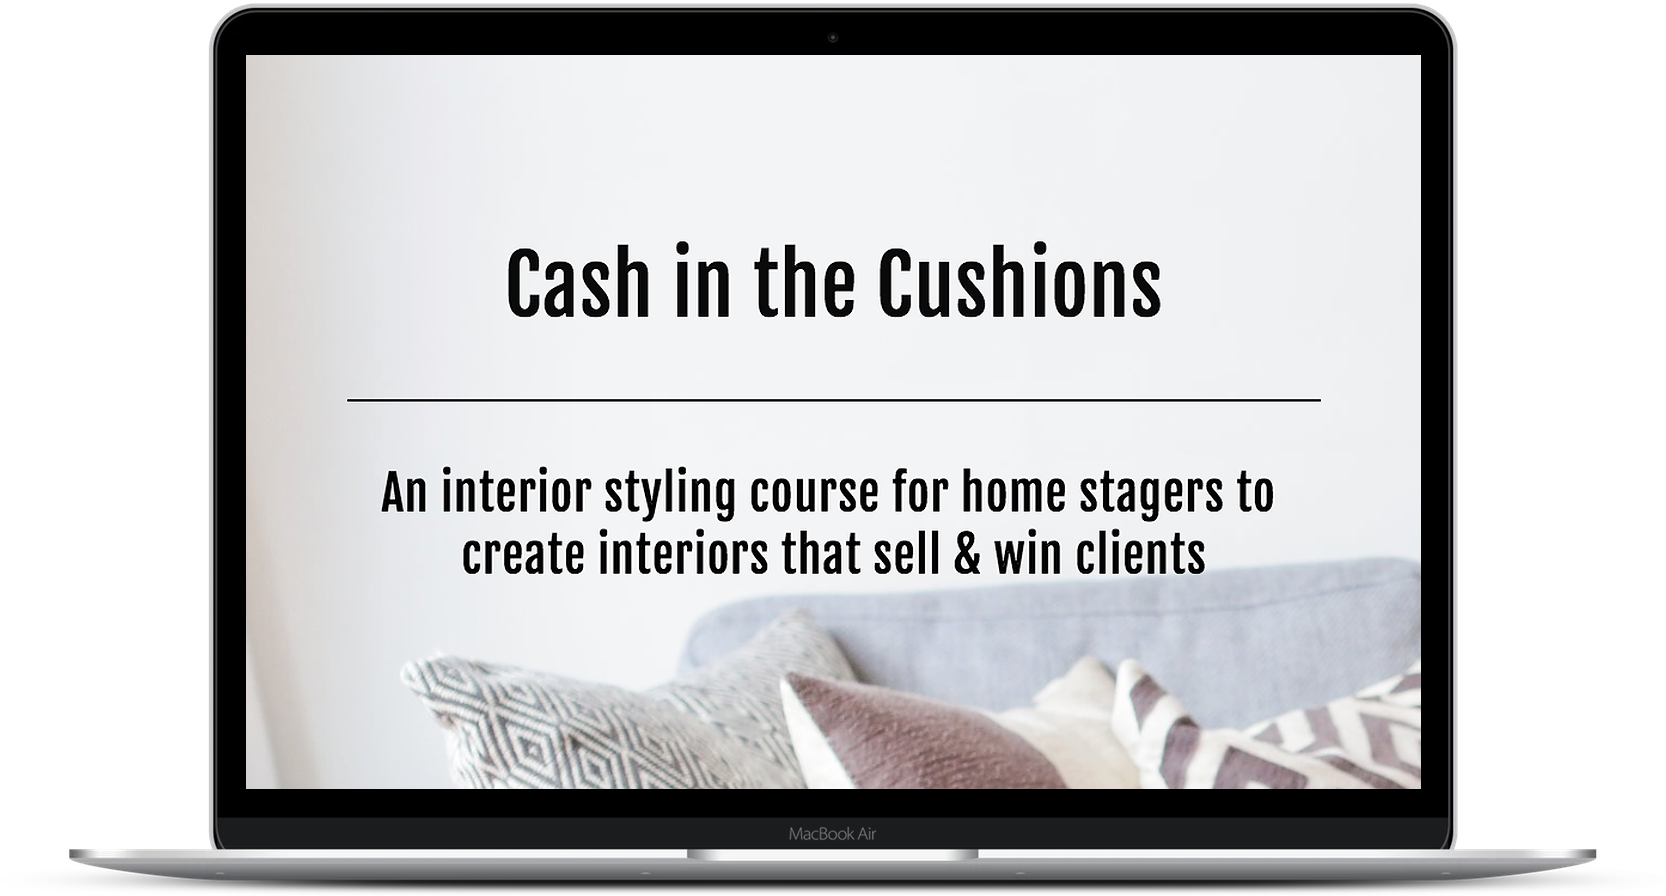 Cash in the Cushions interior styling course